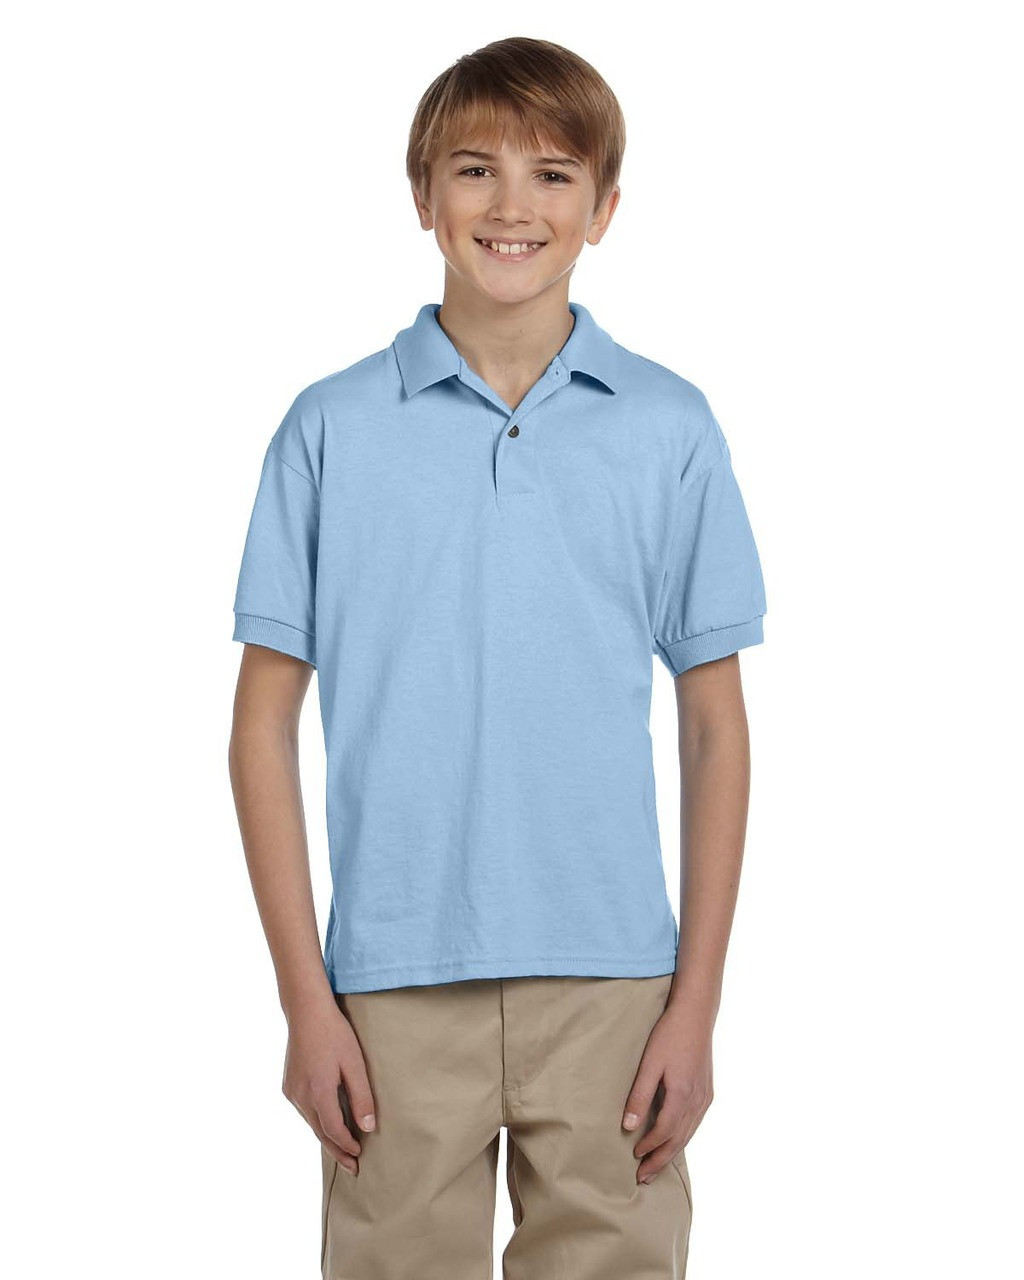 Light Blue - G880B Gildan DryBlend® Youth 50/50 Jersey Polo Shirt | Blankclothing.ca